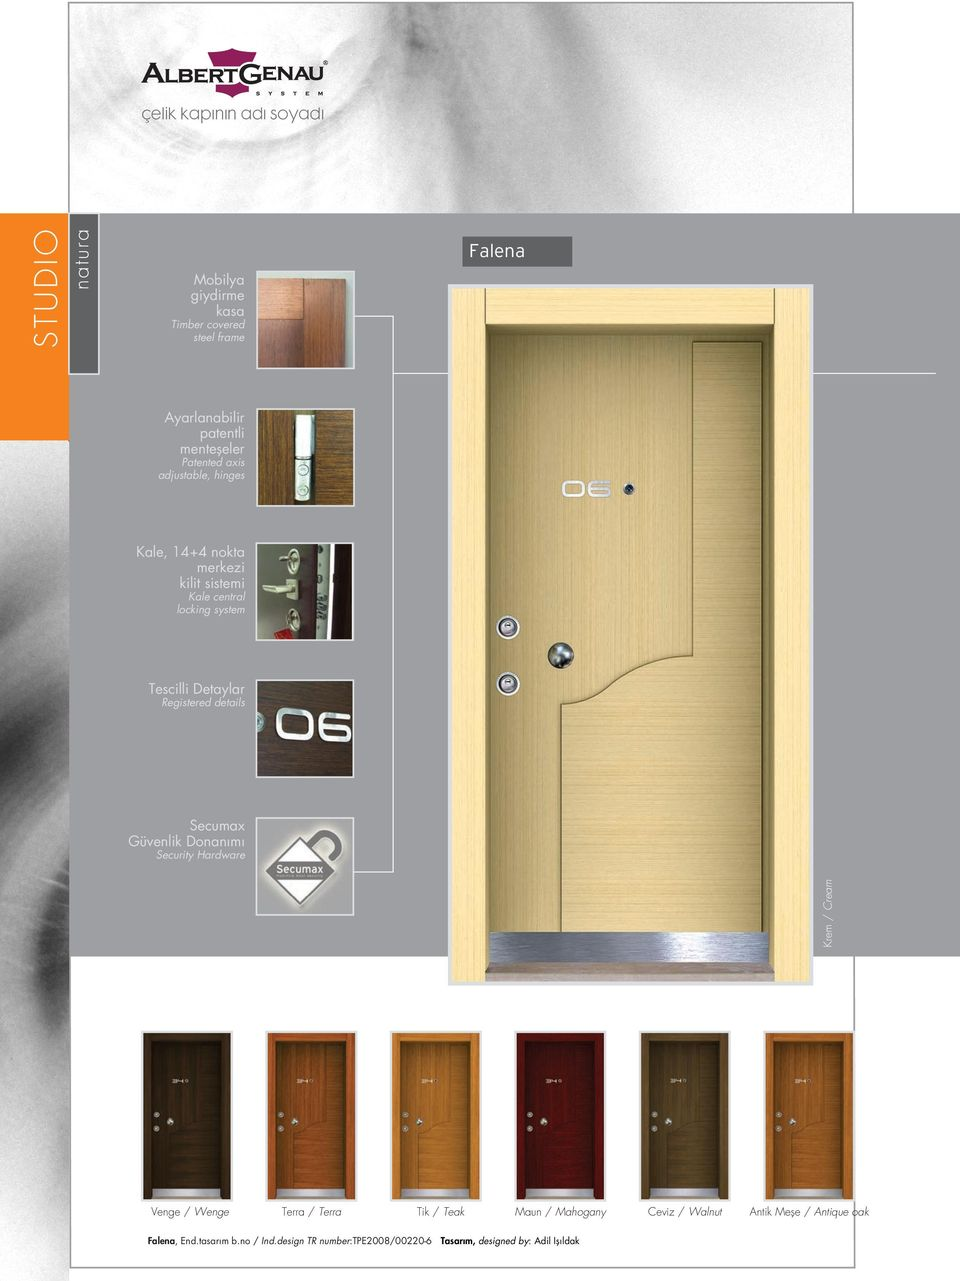 Tescilli Detaylar Registered details Secumax Güvenlik Donan m Security Hardware Krem / Cream Venge / Wenge Terra /